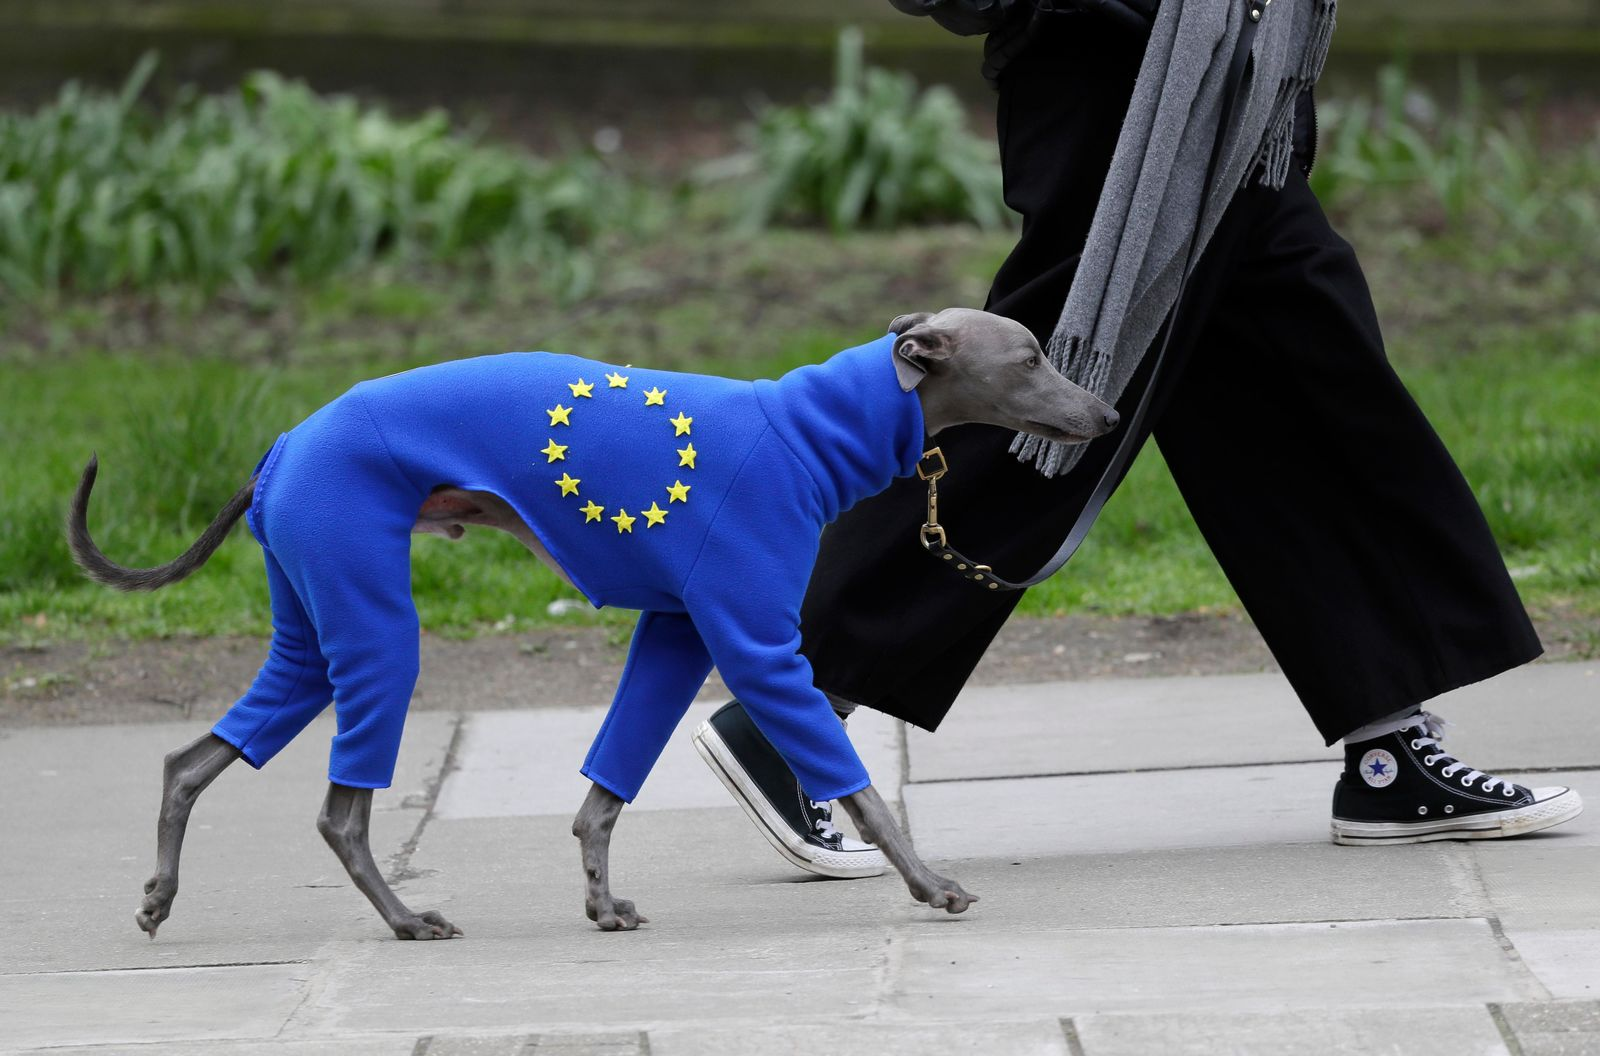 A demonstrator leads a dog wearing a suit in the EU colors during a Peoples Vote anti-Brexit march in London, Saturday, March 23, 2019.{ } (AP Photo/Kirsty Wigglesworth)